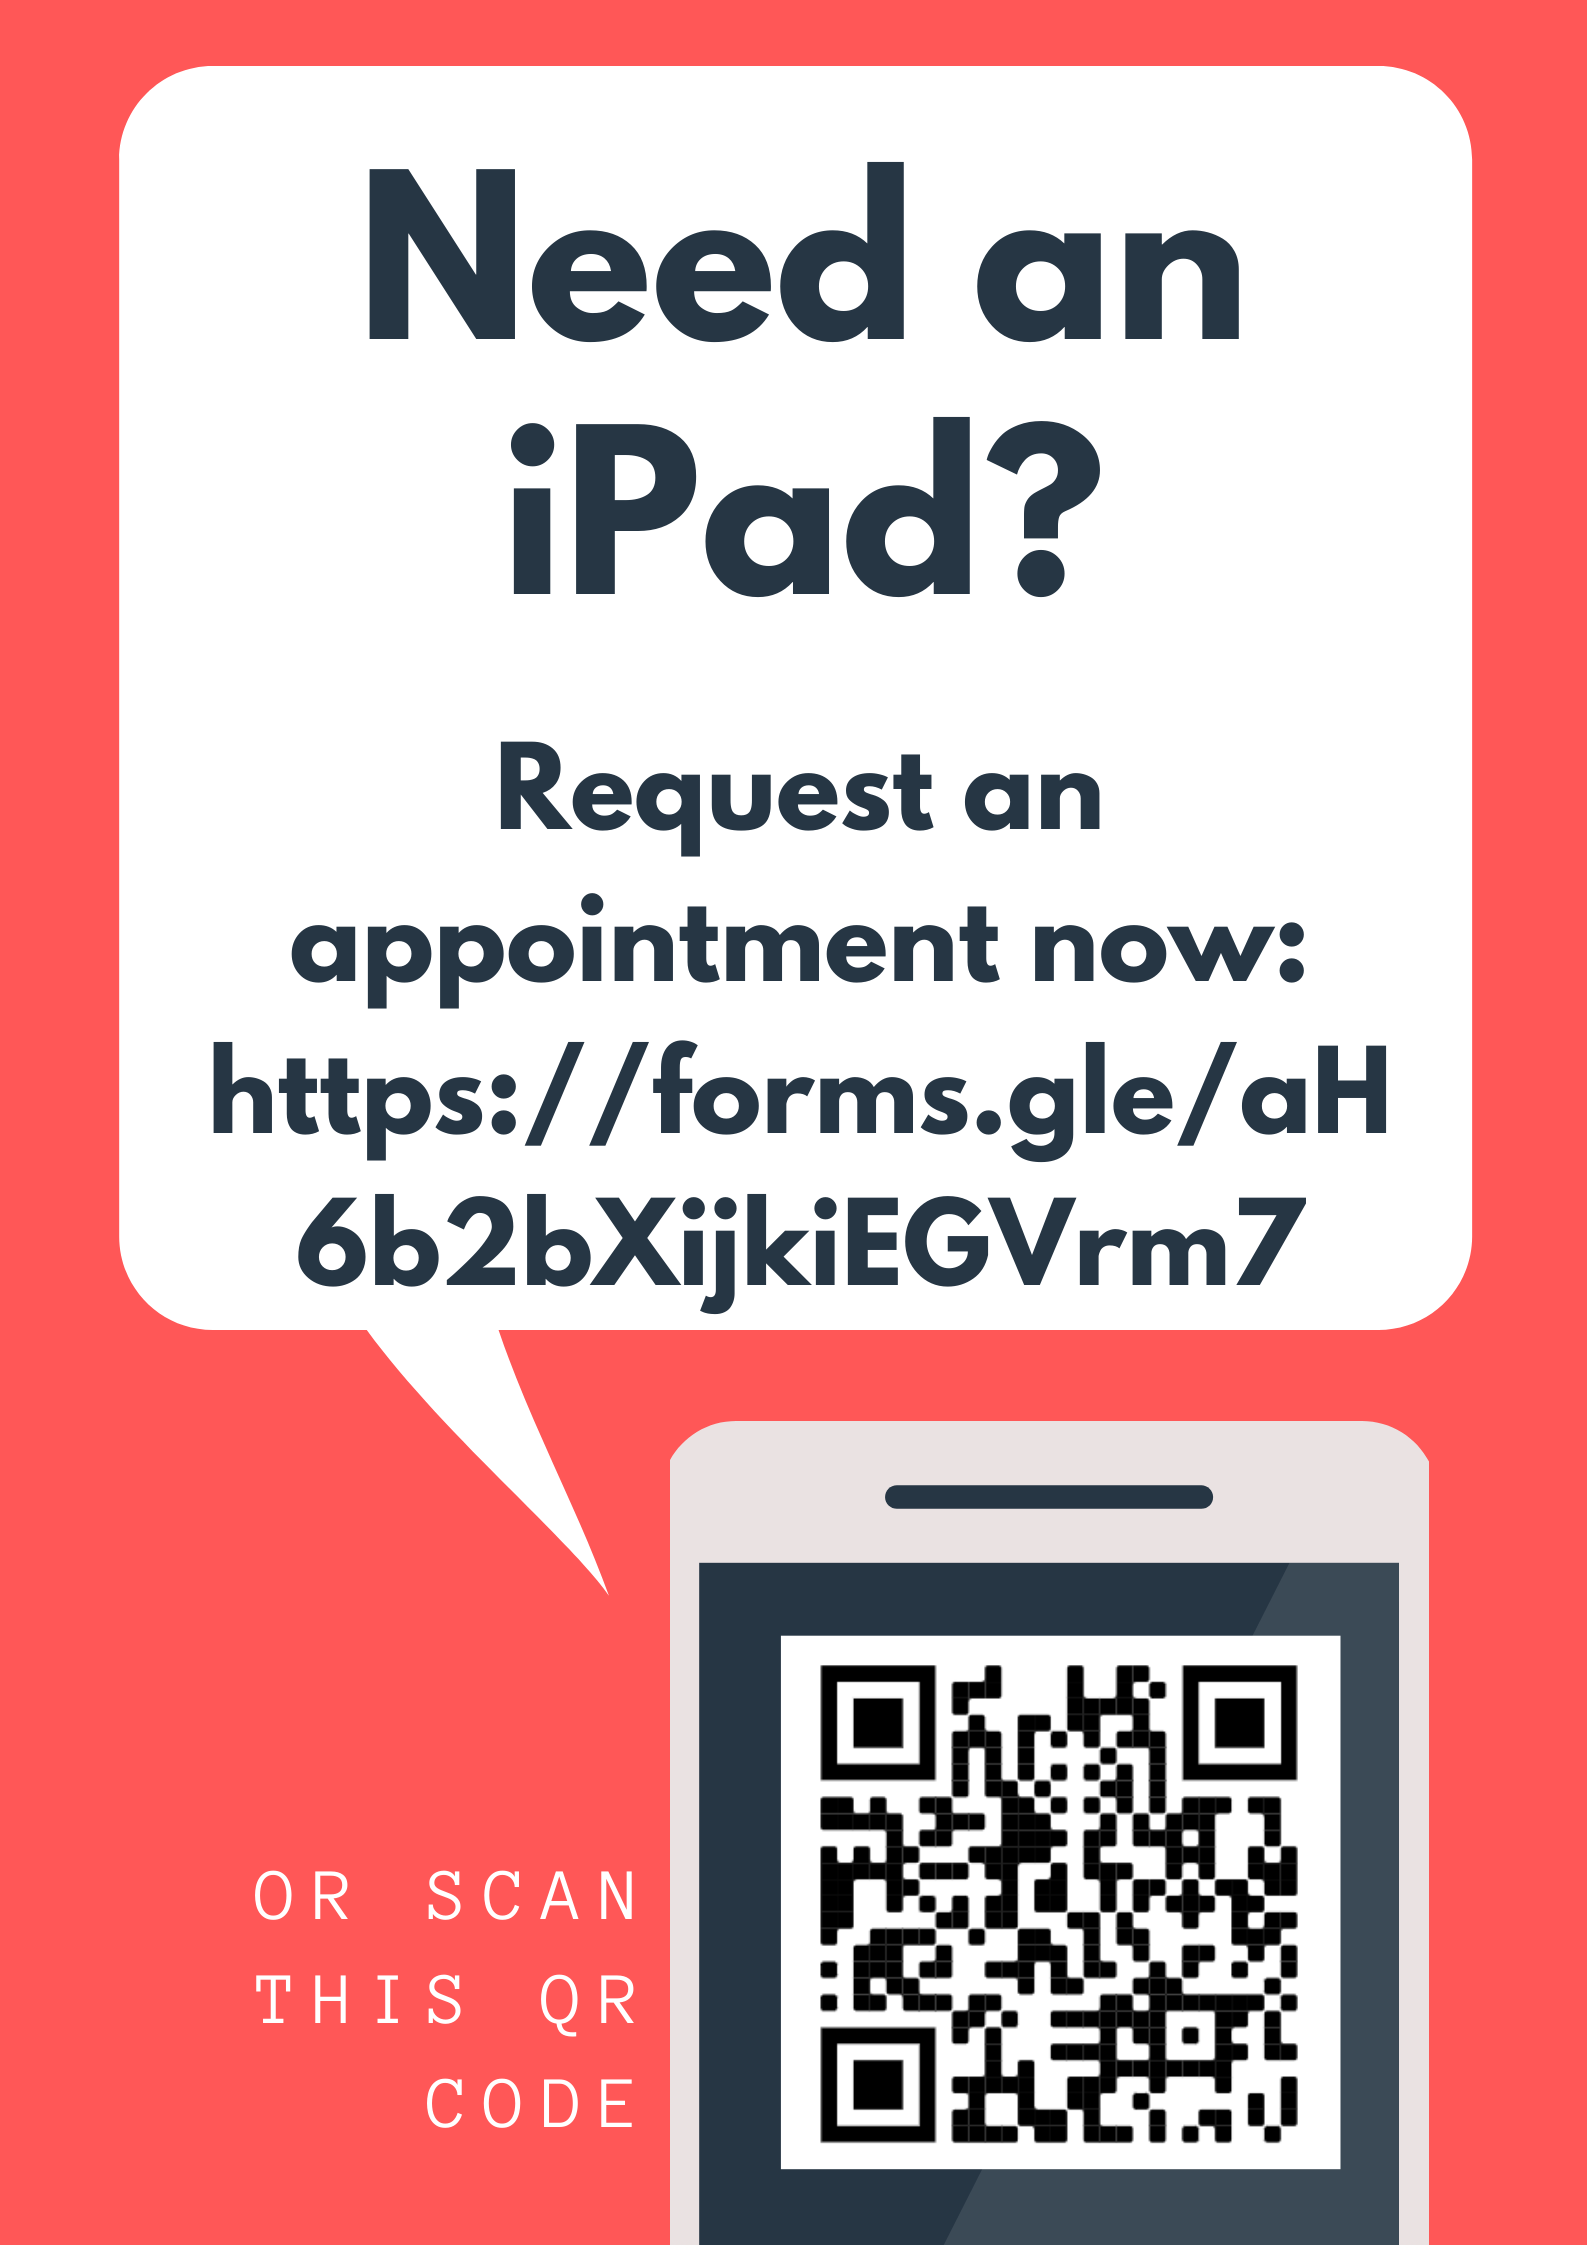 iPad Appointment QR Code and Link